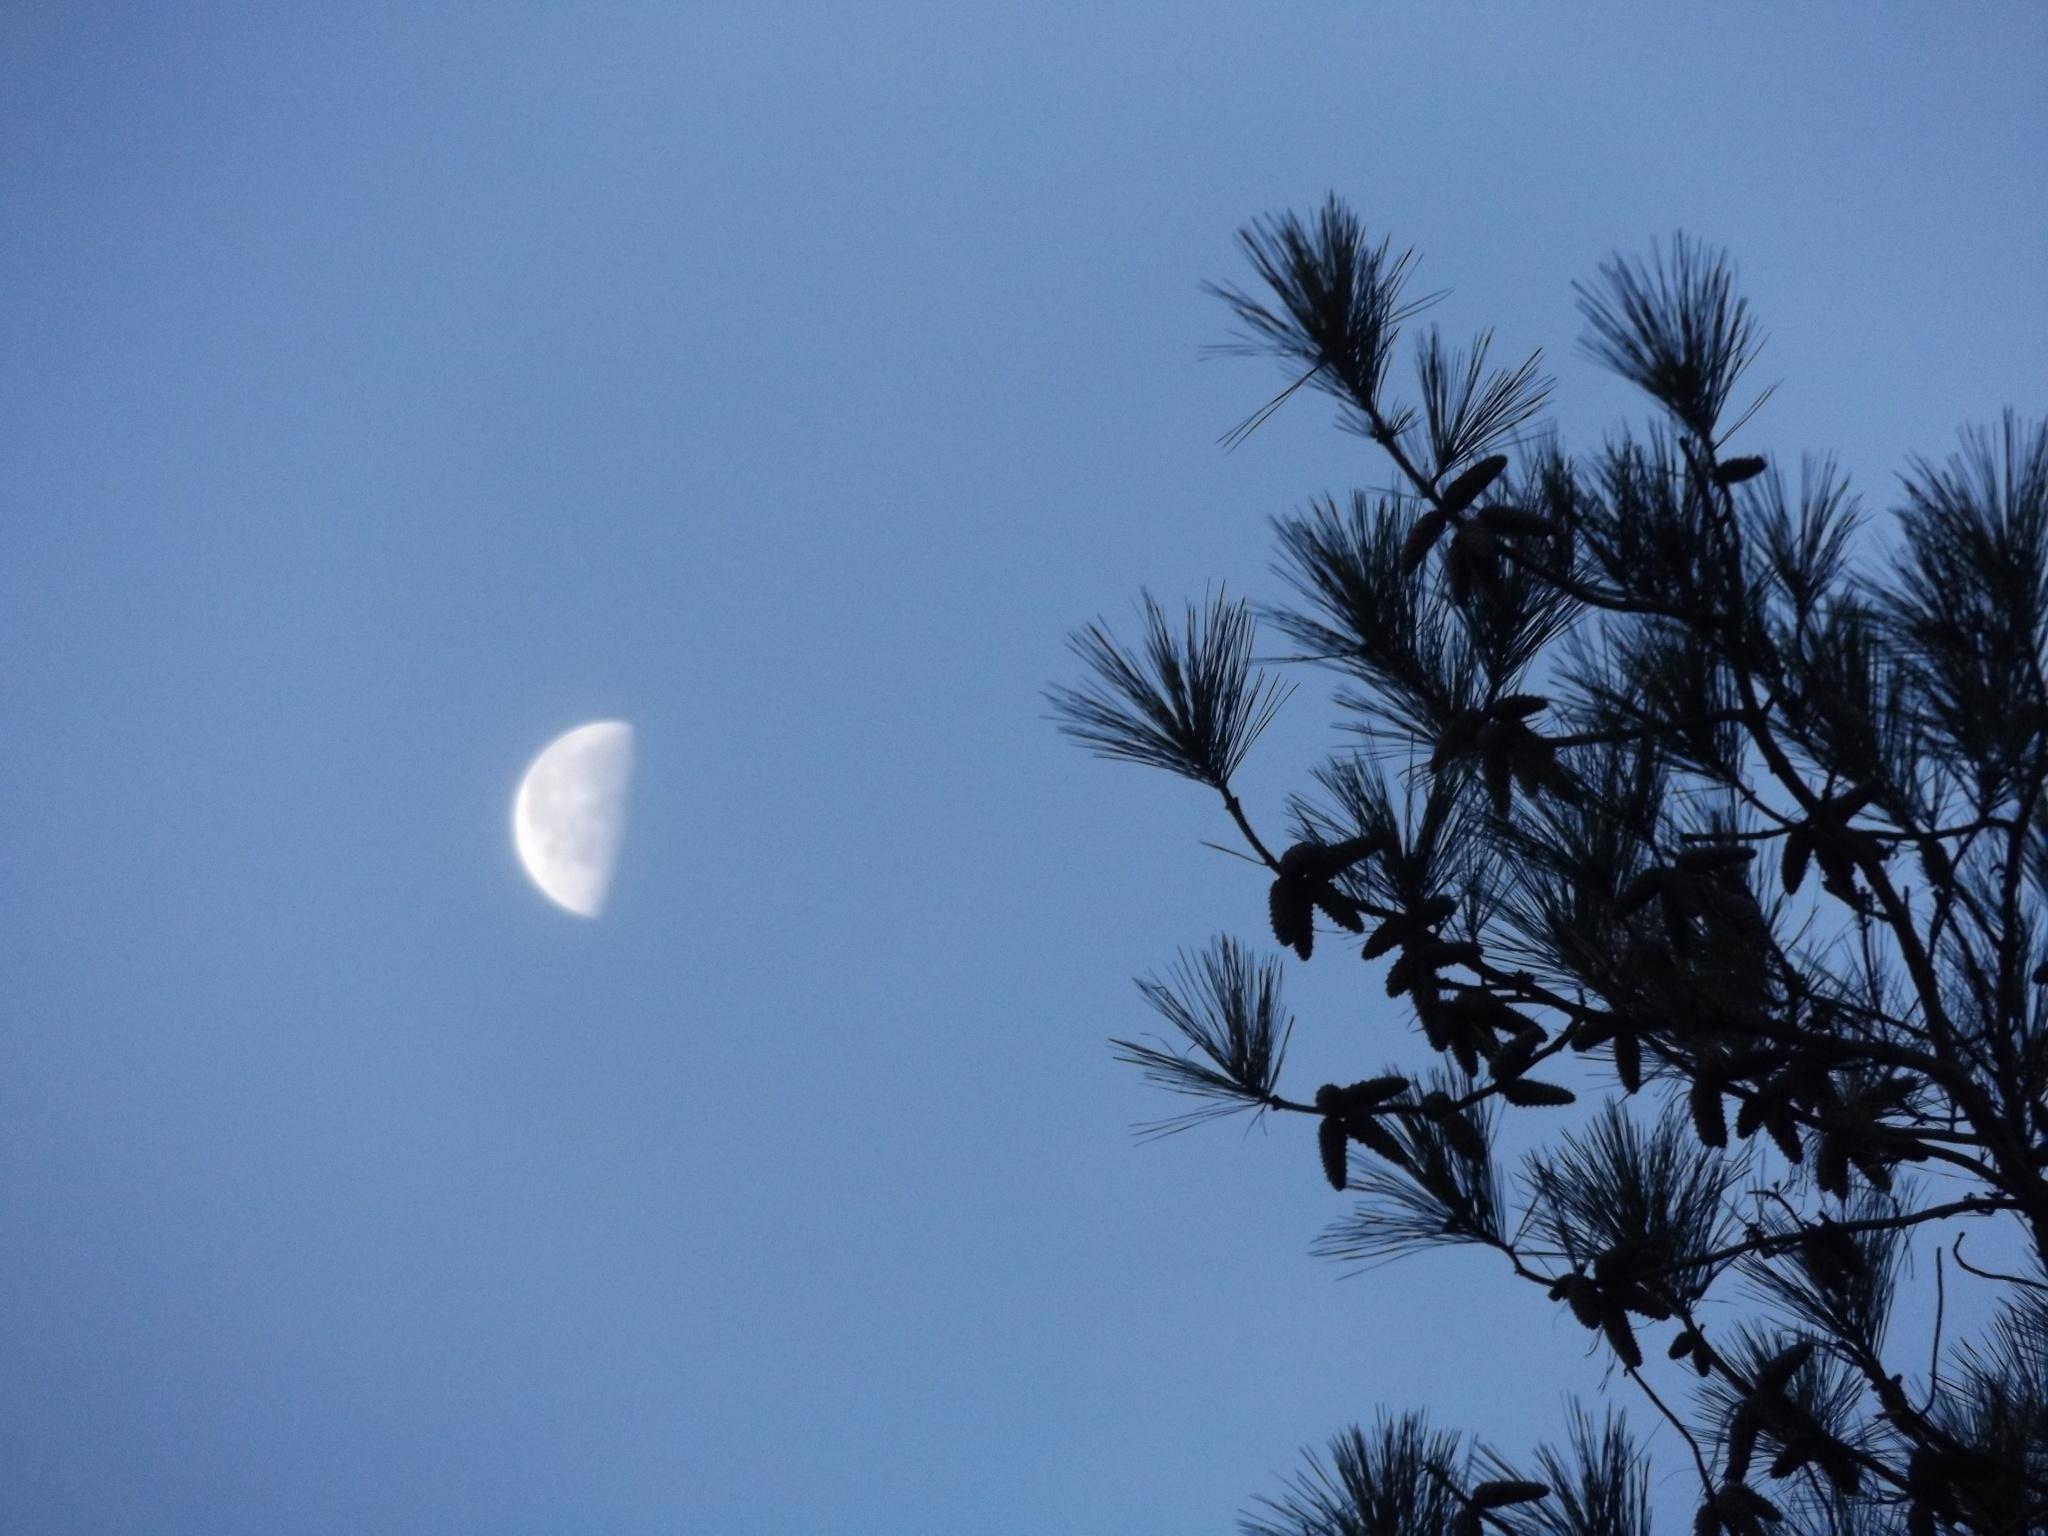 MORNING MOON by ritamcbai66